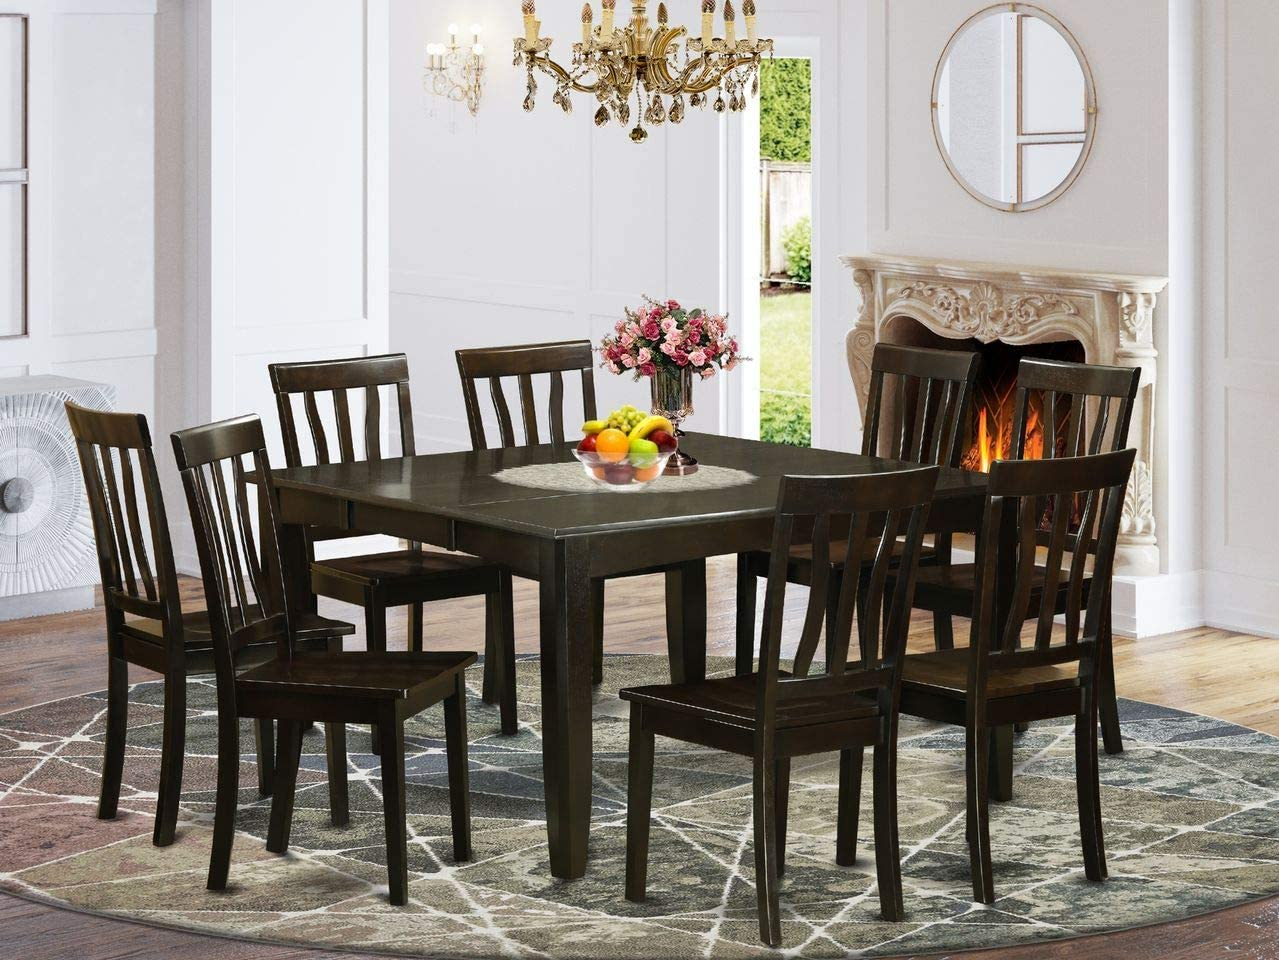 9 Pc Dining room set - Dinette Cha Table and Cheap Miami Mall SALE Start 8 with Kitchen Leaf